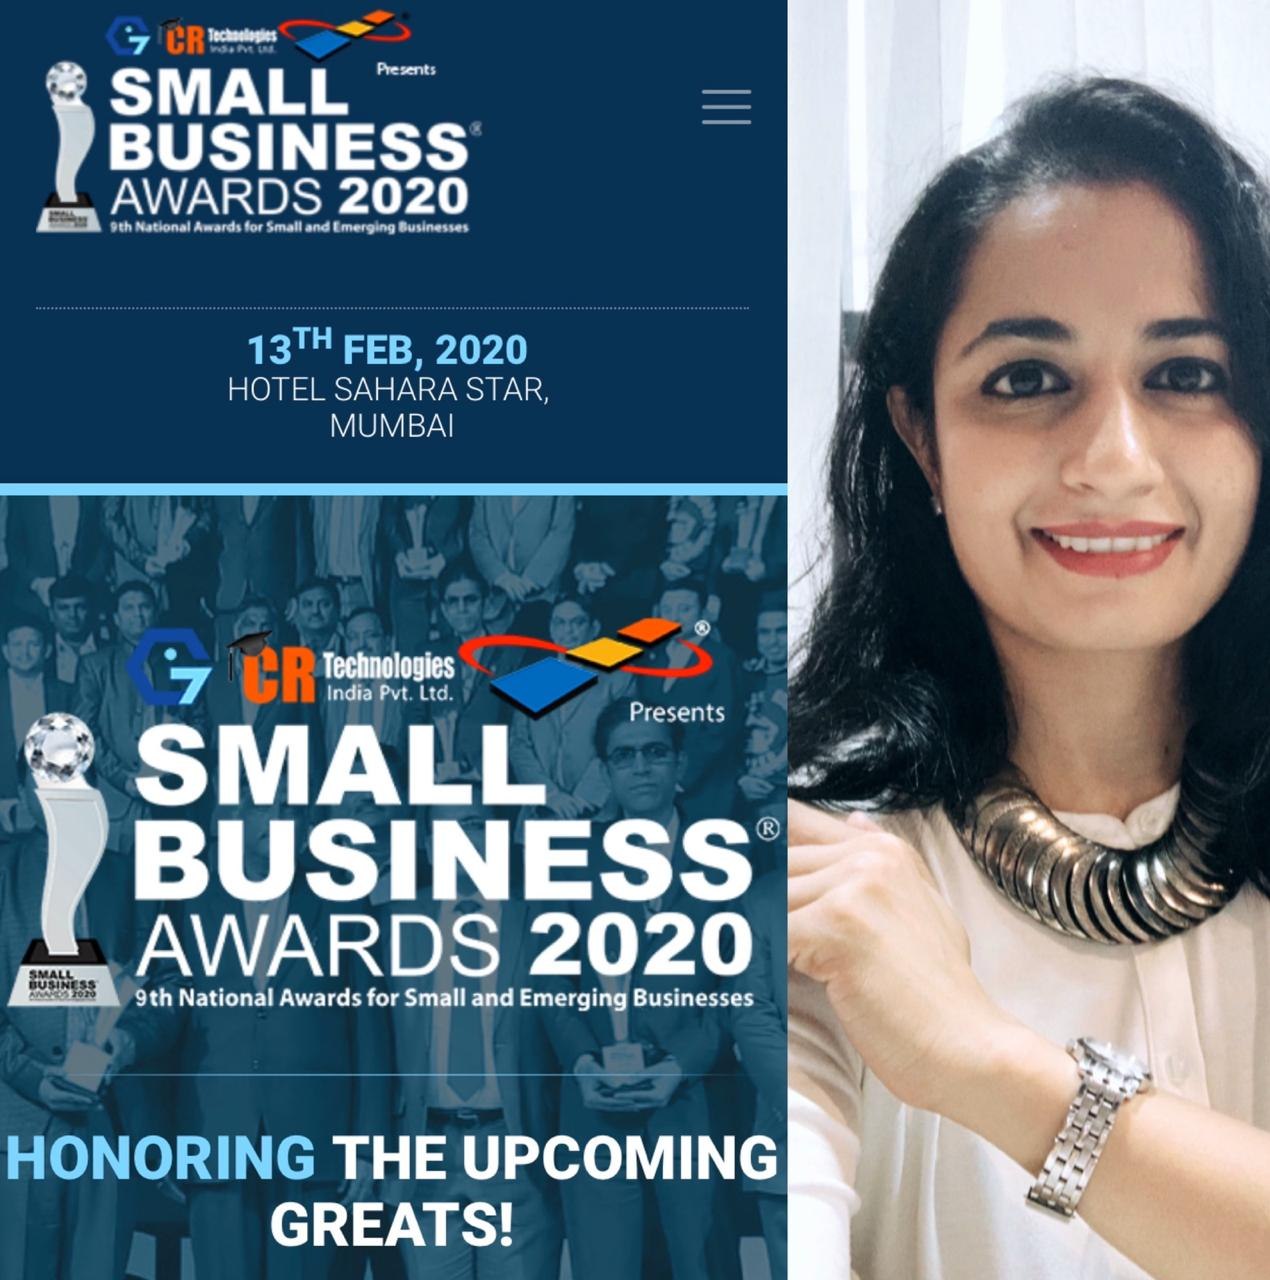 Nominated for Small Business Awards